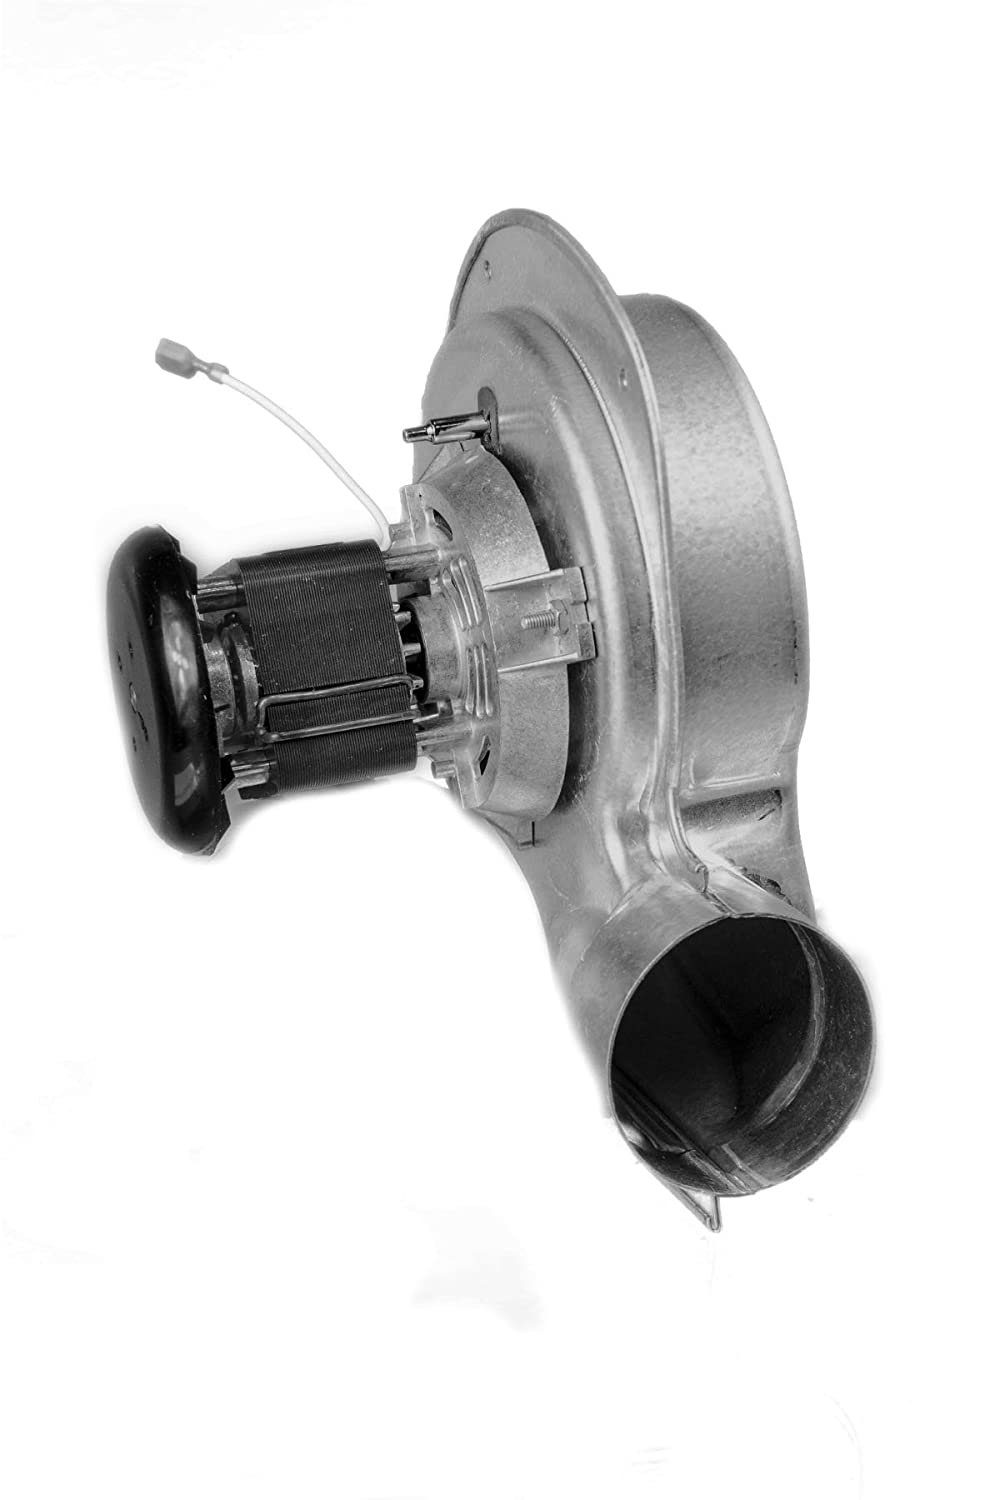 Fasco A176 Shaded Pole OEM Replacement Specific Purpose Blower with Ball Bearing, 1/25HP, 3,100 rpm, 115V, 60 Hz, 2.2 amps